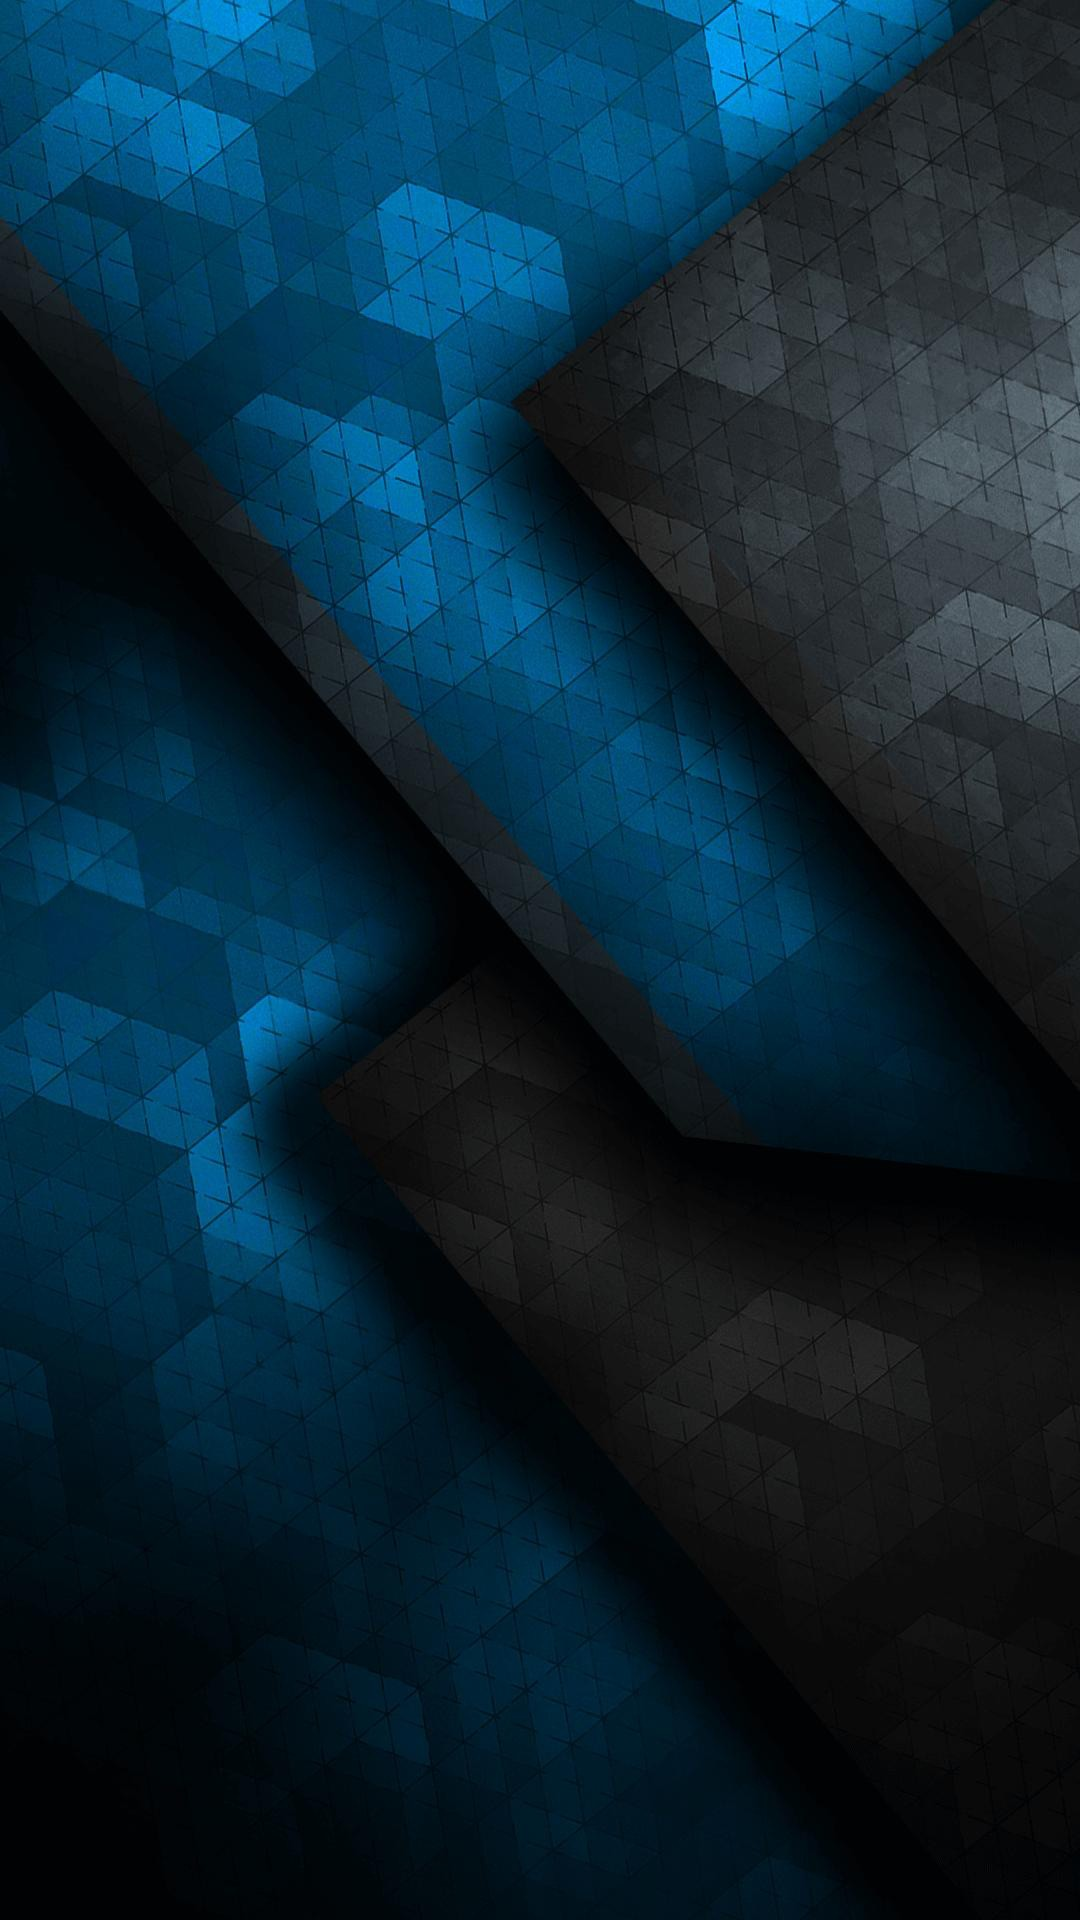 Abstract 2 Wallpaper 1080x1920 380x676